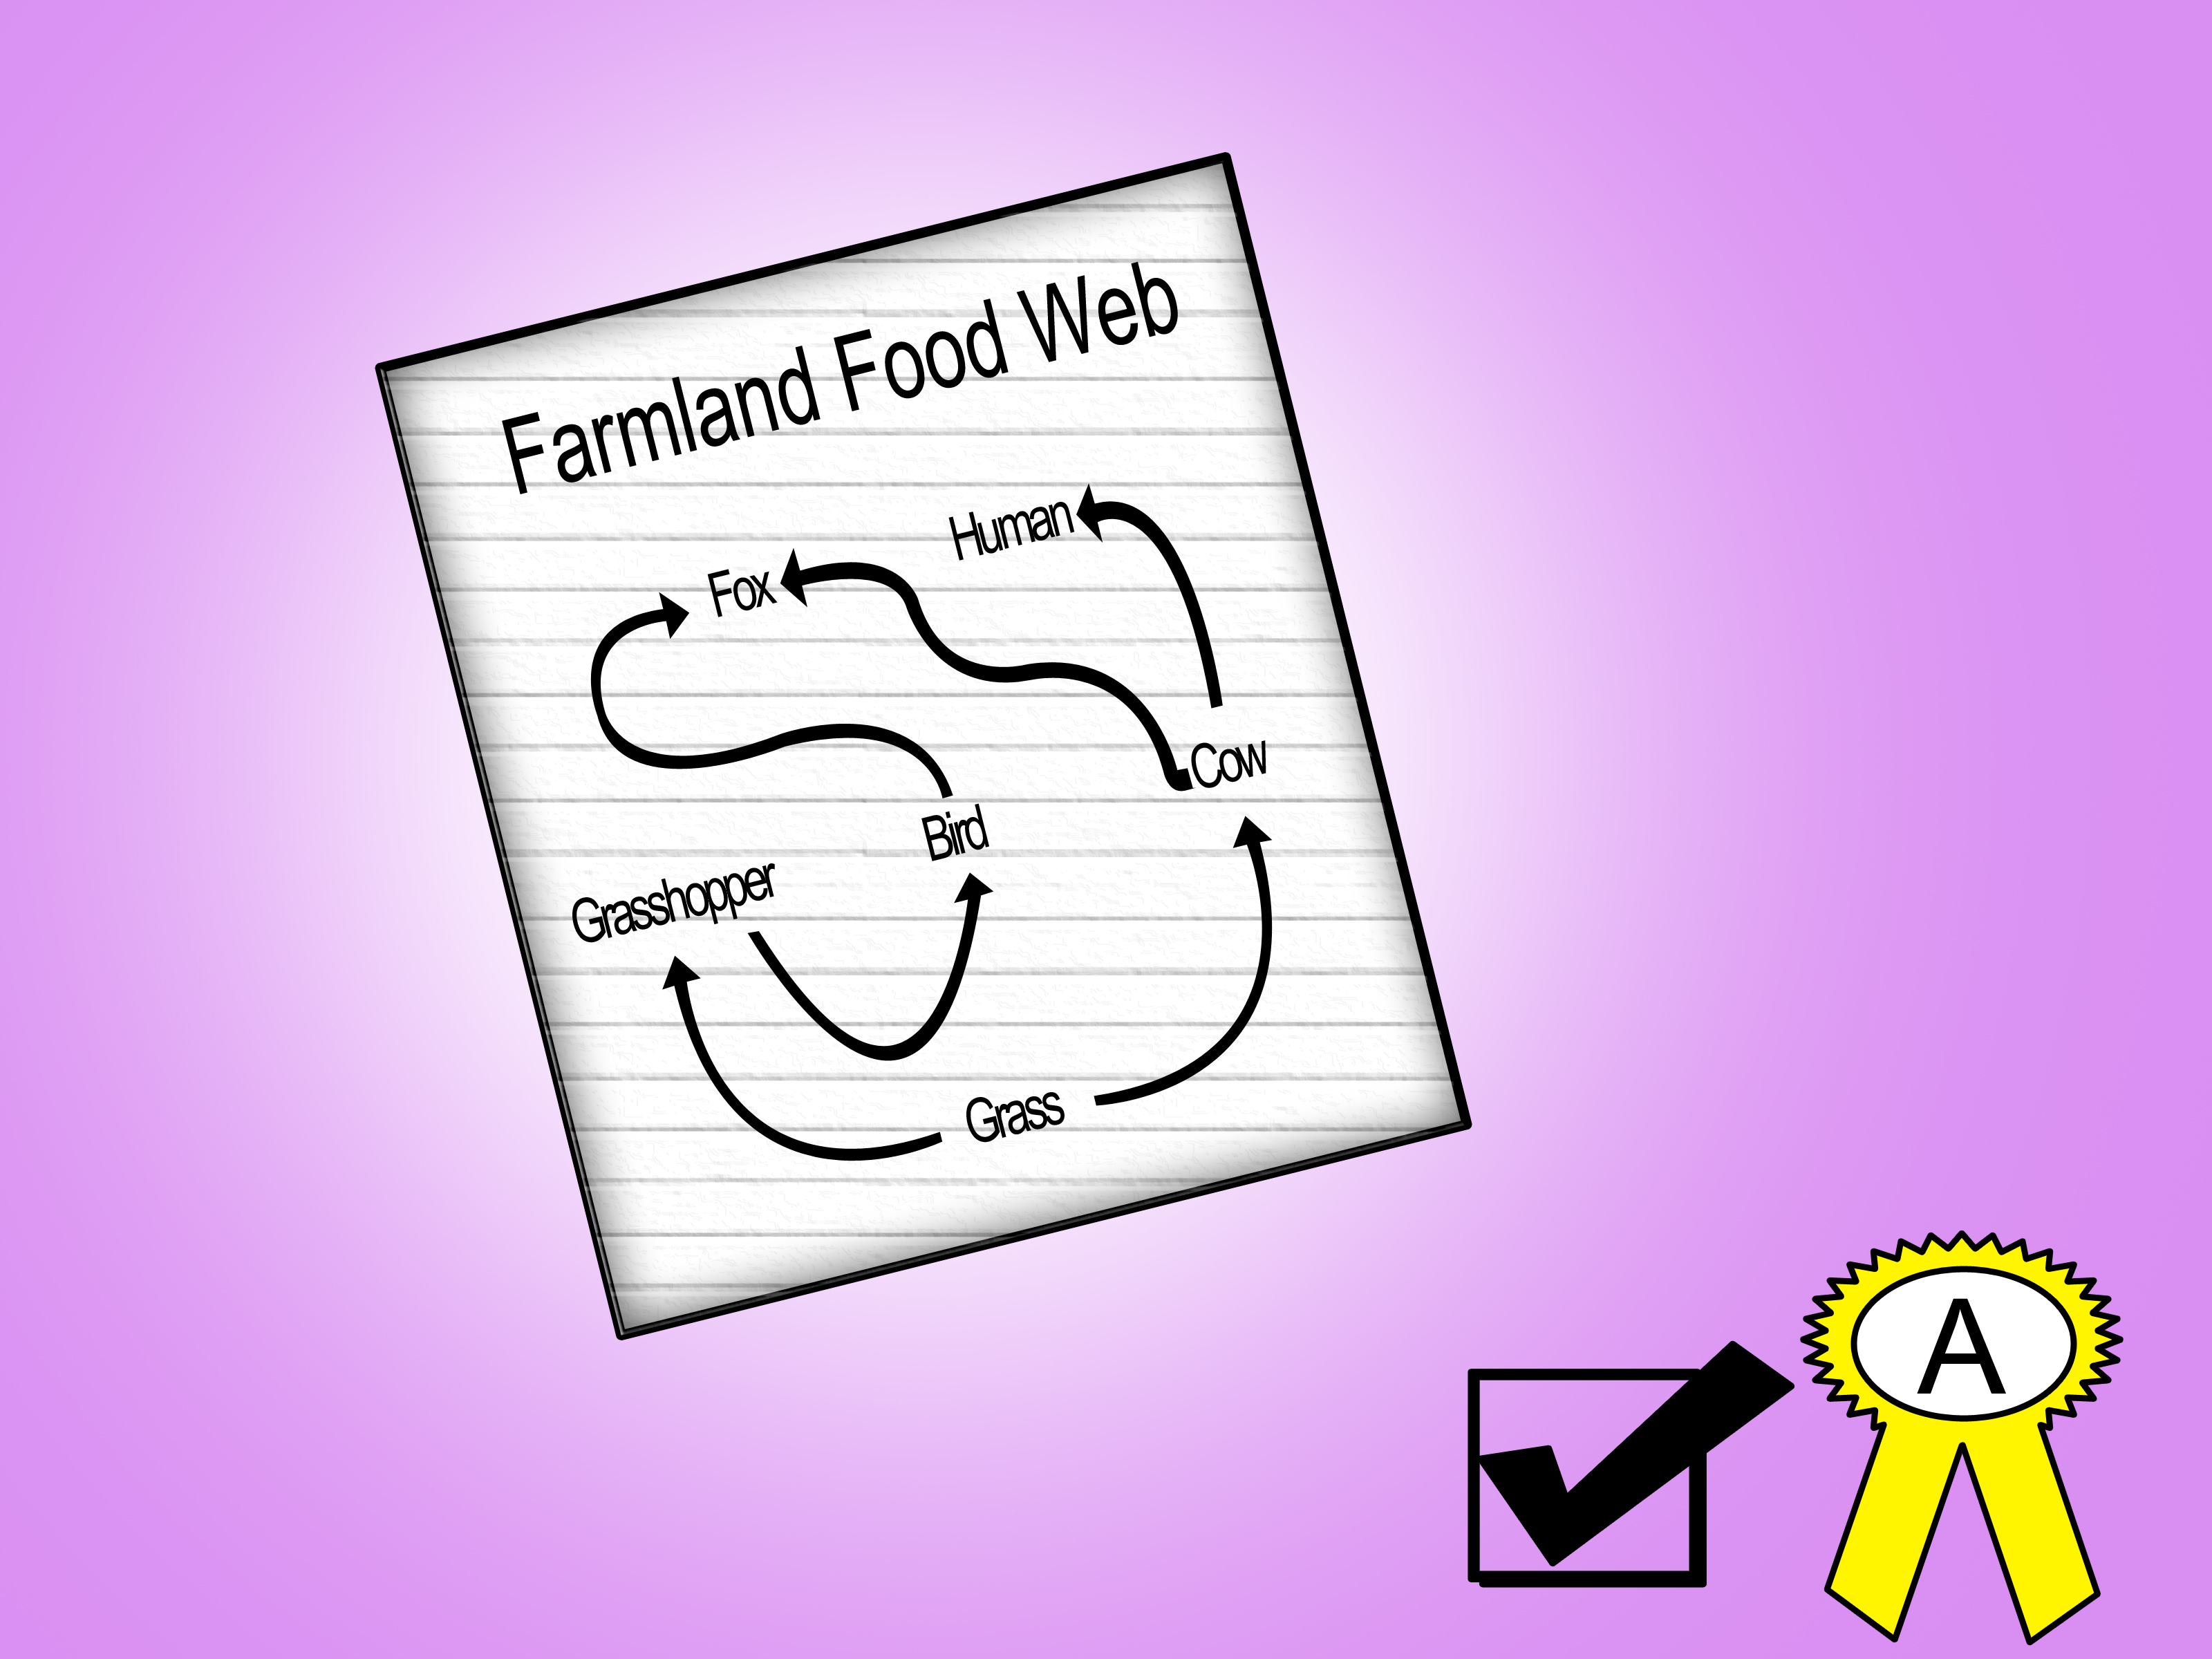 3200x2400 How to Draw a Food Web 5 Steps (with Pictures)